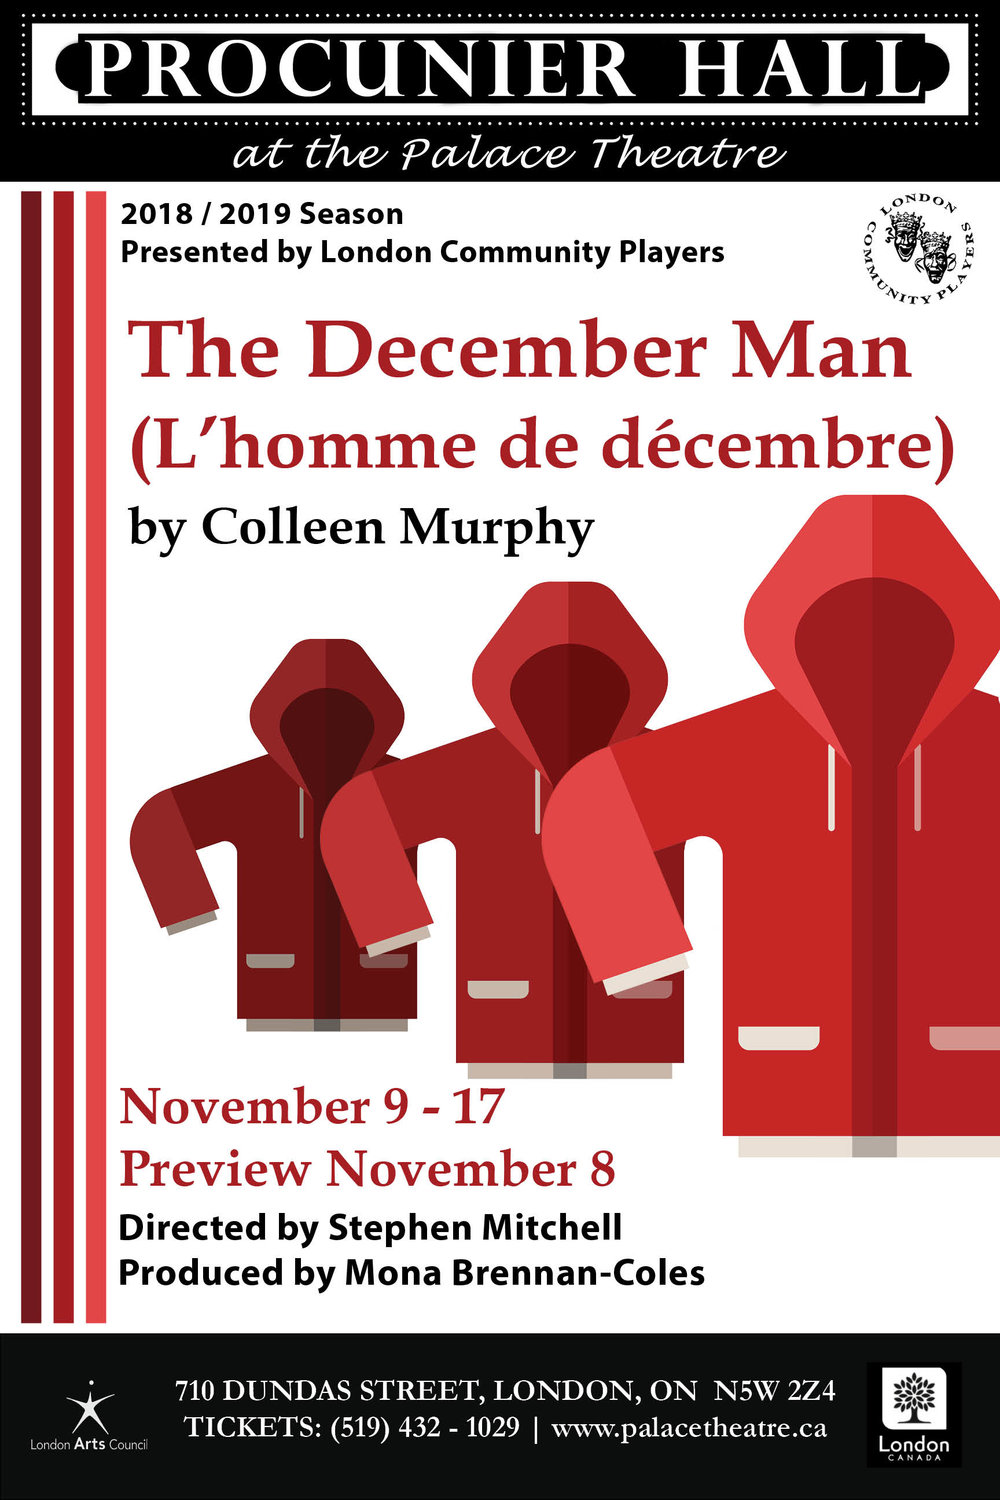 The December Man (L'homme de décembre) - By Colleen MurphyDirector Stephen MitchellPresented by LCPProcunier Hall, November 8-17, 2018Engineering student Jean Fournier escapes the 1989 Montreal Massacre. But his life spirals downward as his feelings overwhelm him. His parents, Benoît and Kathleen, are put to the test as they try to help their only son find a way to cope. Playwright Colleen Murphy takes us back through the lives of the fictional Fournier family and in so doing gives a poignancy to the words, fears, and jests we share every day without knowing how significant they may become. In simple and sensitive dialogue, The December Man (L'homme de décembre) examines our feelings in times of darkness. The depth of the Fournier's love for one another will strike a universal chord.